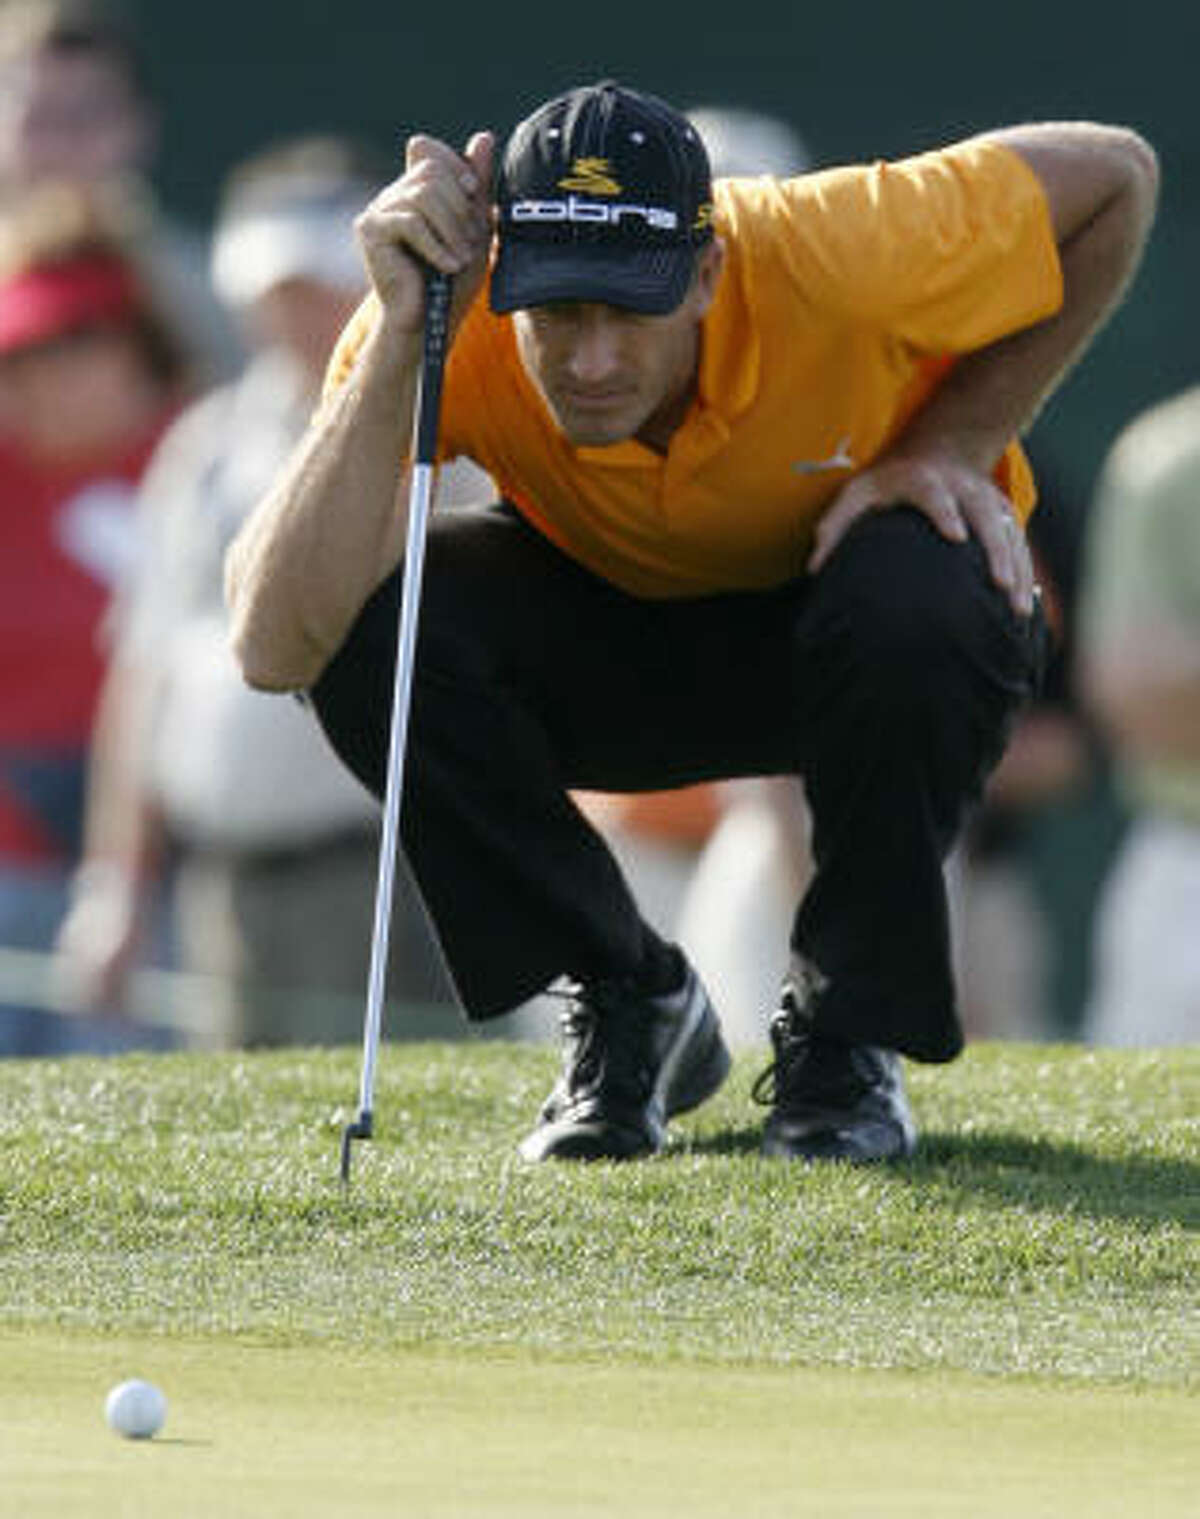 Geoff Ogilvy lines up a putt on the 17th hole during the delayed second round.